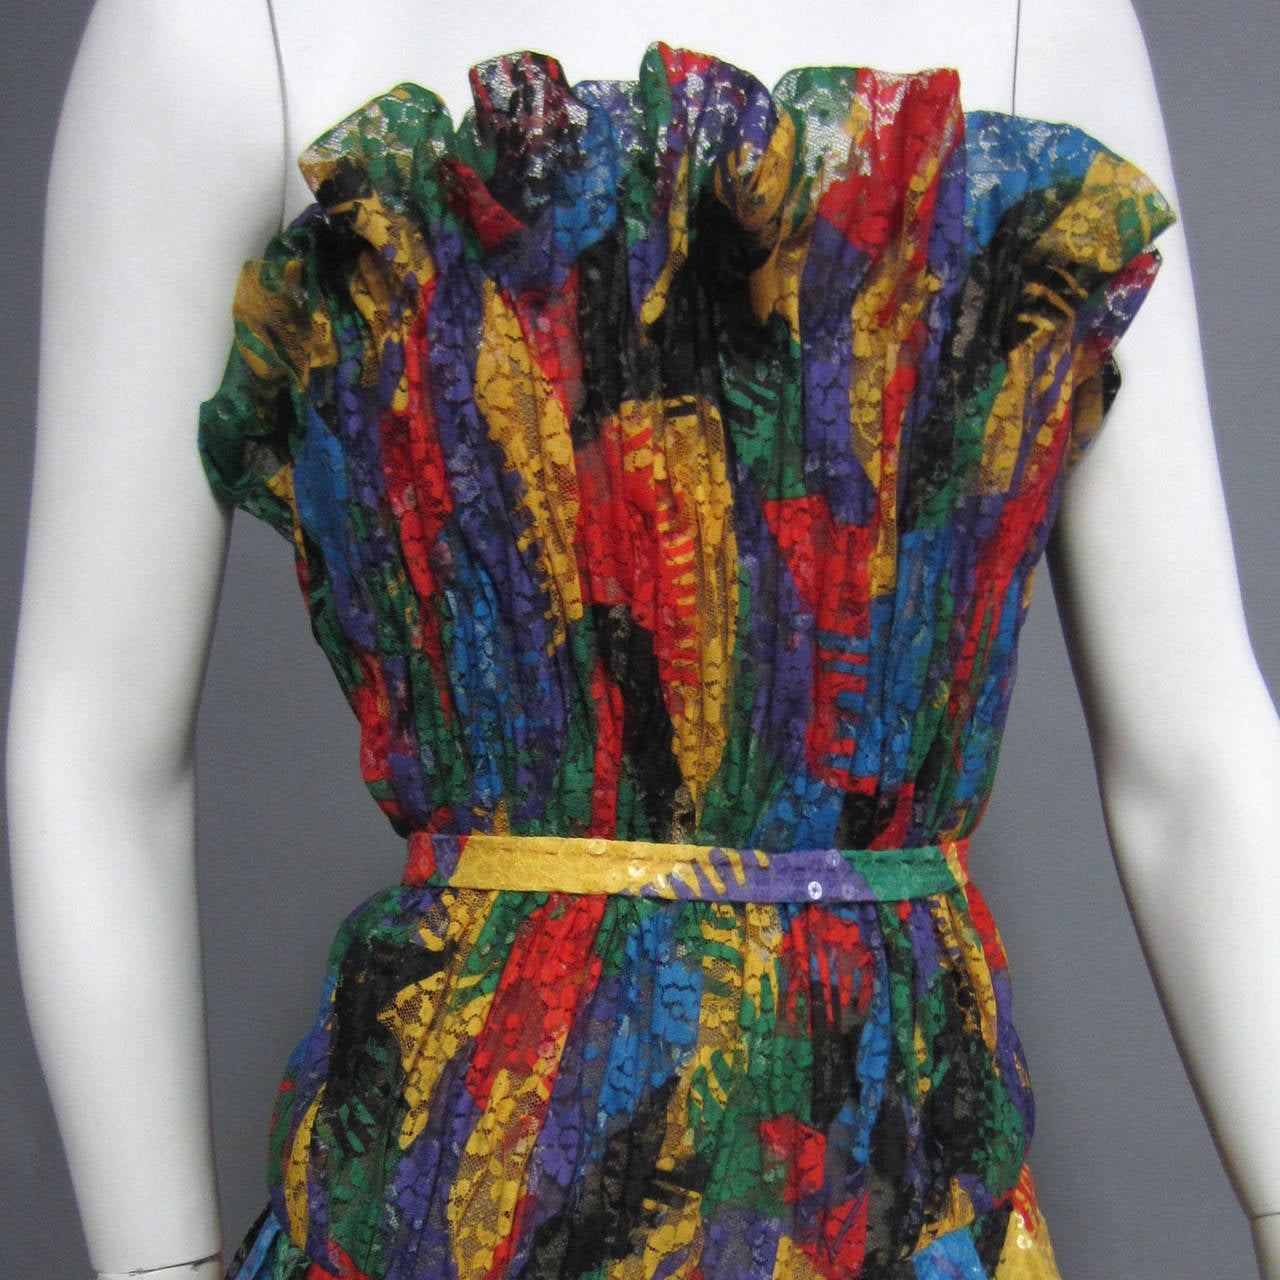 A kaleidoscope of colors and a mix of fabrics, this SCAASI dress has it all. The bodice is made of ruched, multi colored lace. Around the entire top of the bodice, the lace forms a ruffle detail. The lace is sheer, however the bodice is lined in a